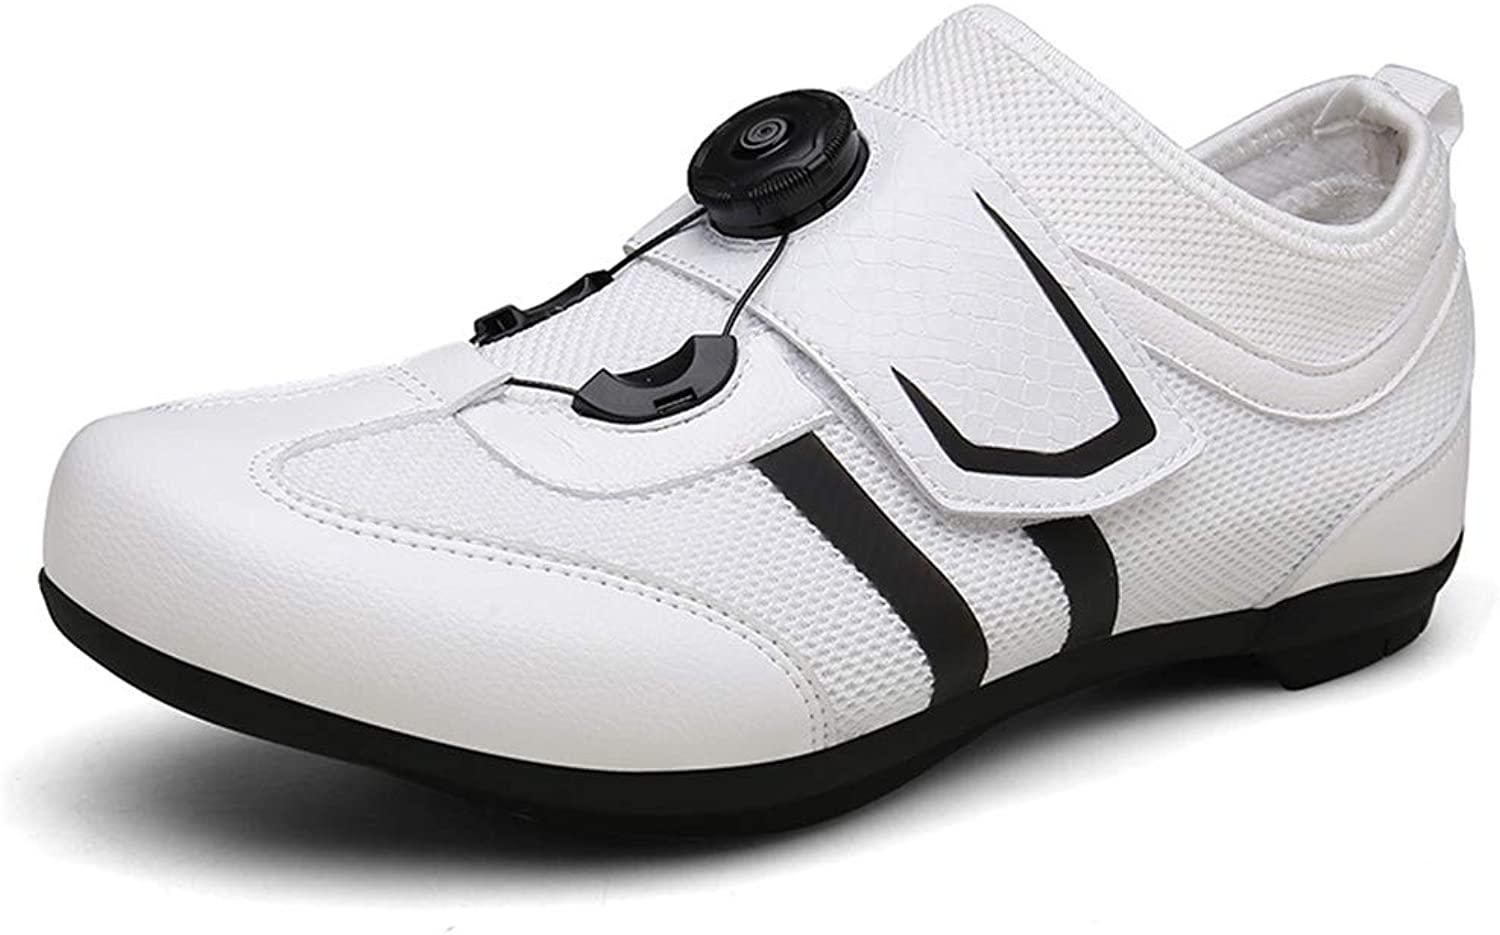 Willsky Men's Cycling shoes, Breathable Road Cycling shoes Anti-Skid Lock Assist Unisex Mountain Cycling shoes,White,39